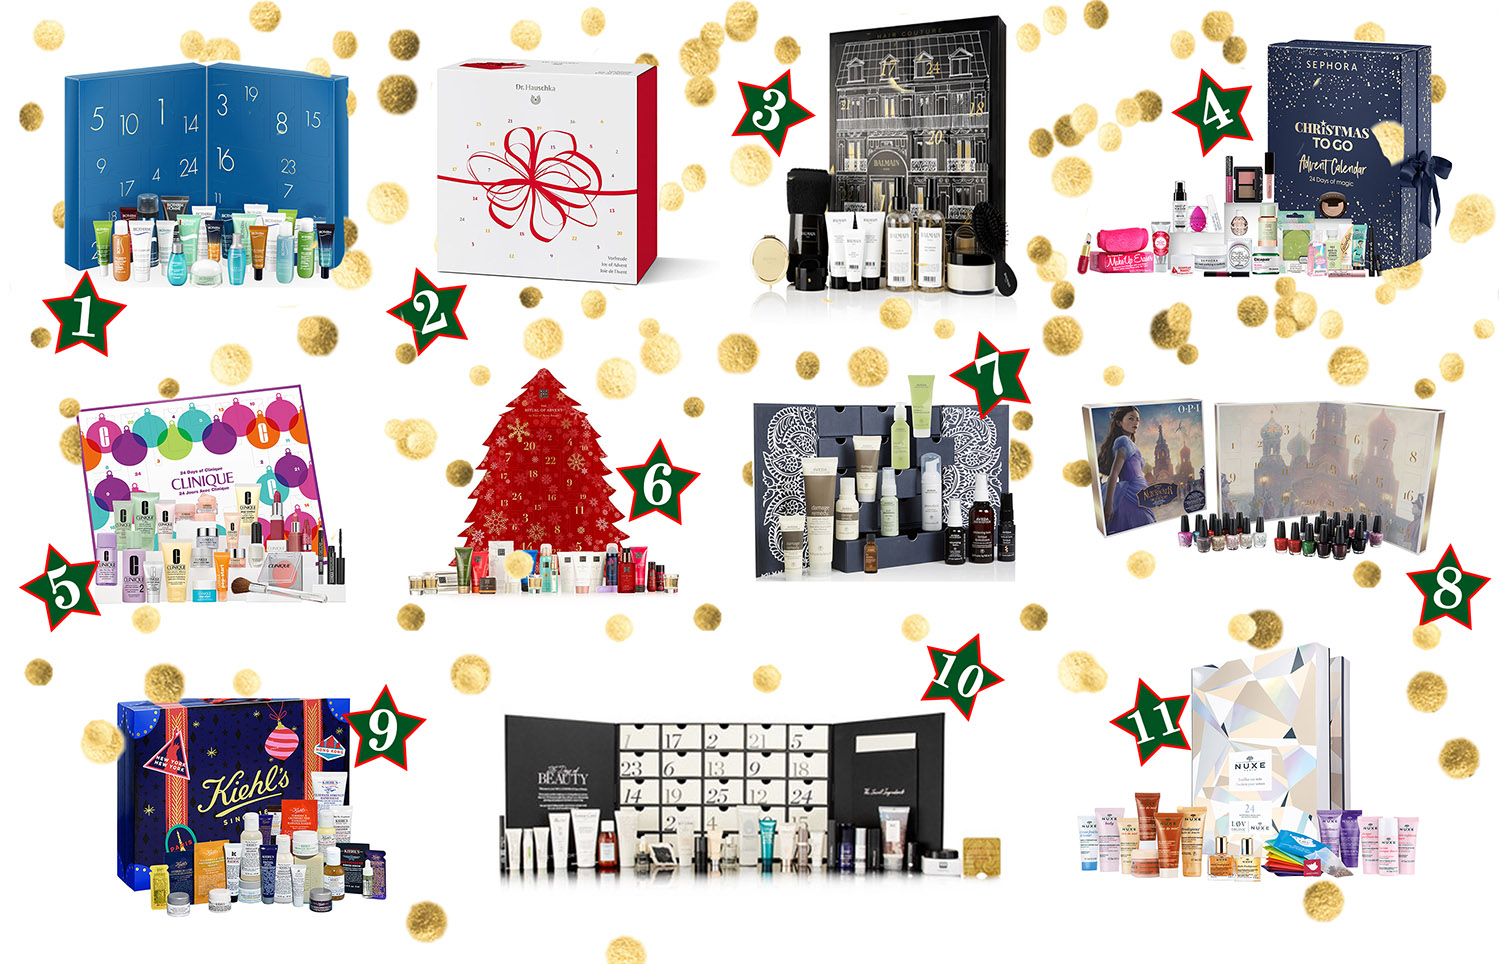 11 BEAUTY ADVENT CALENDARS YOU NEED TO CHECK